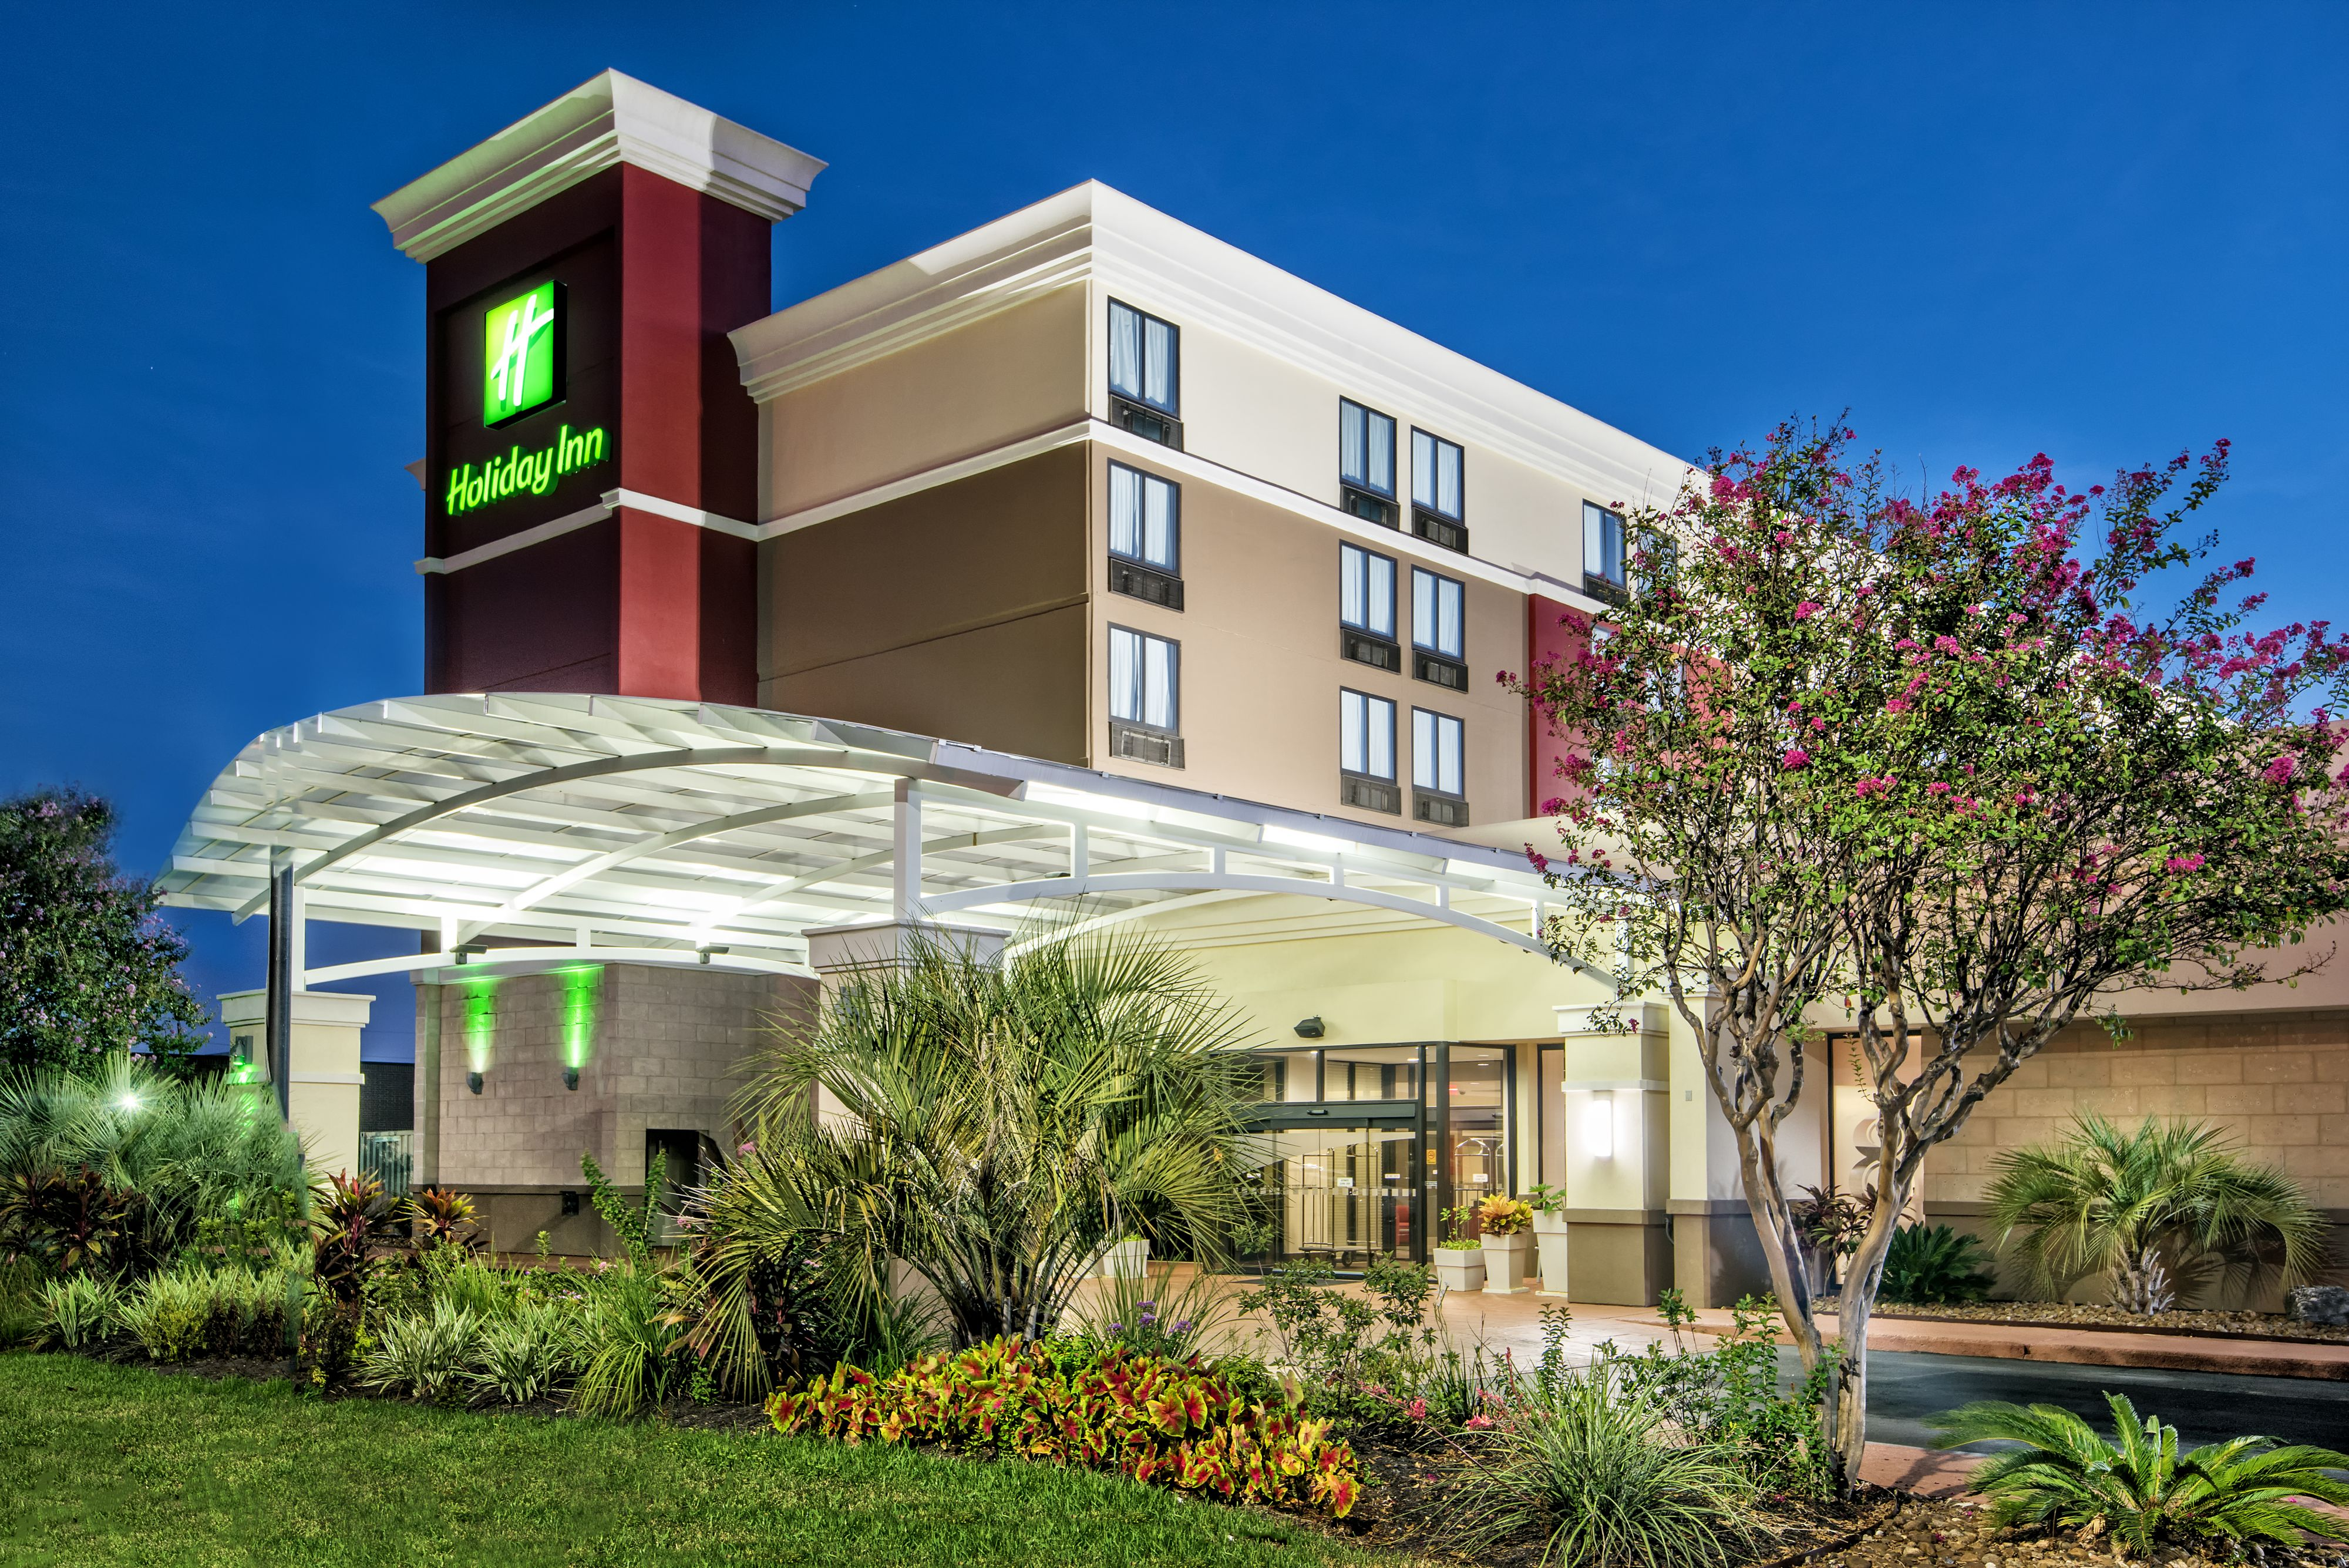 Holiday Inn Houston Sw - Sugar Land Area image 0